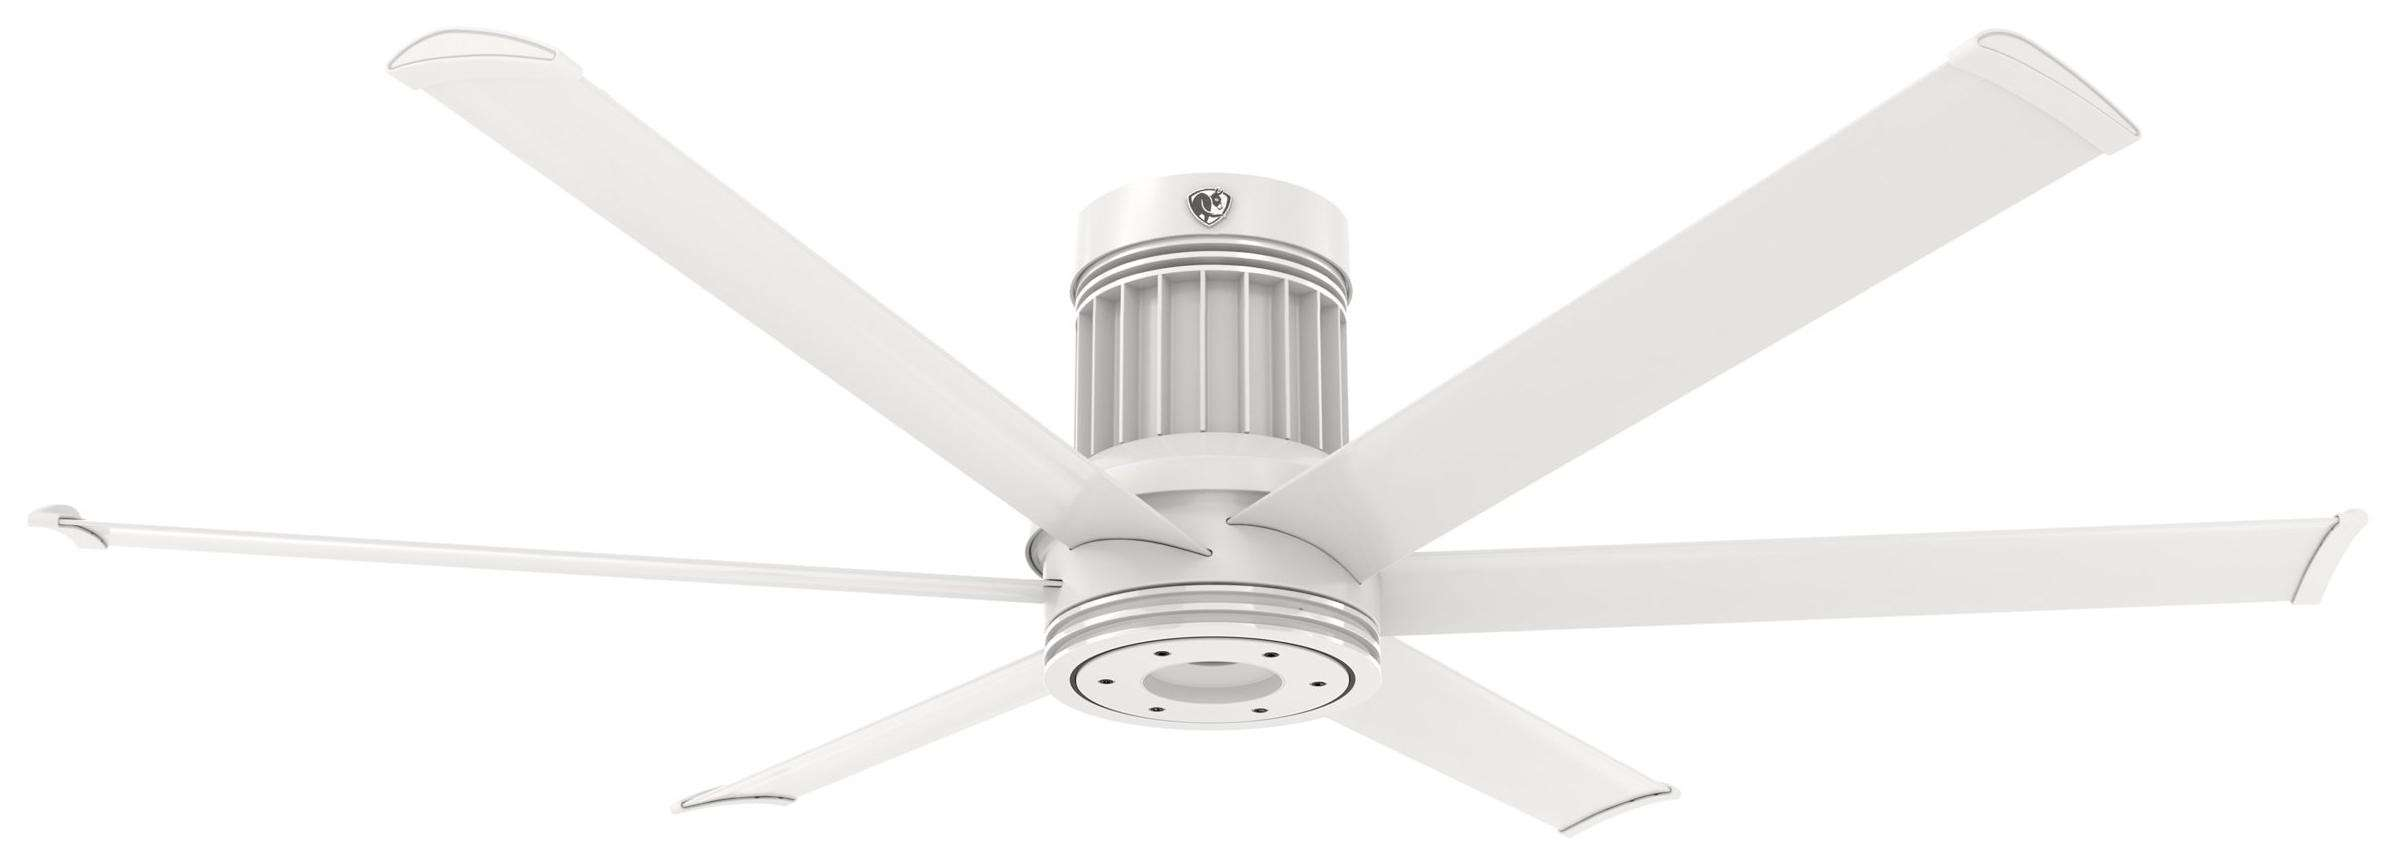 i6 60 Inch Flush Mount Outdoor in White